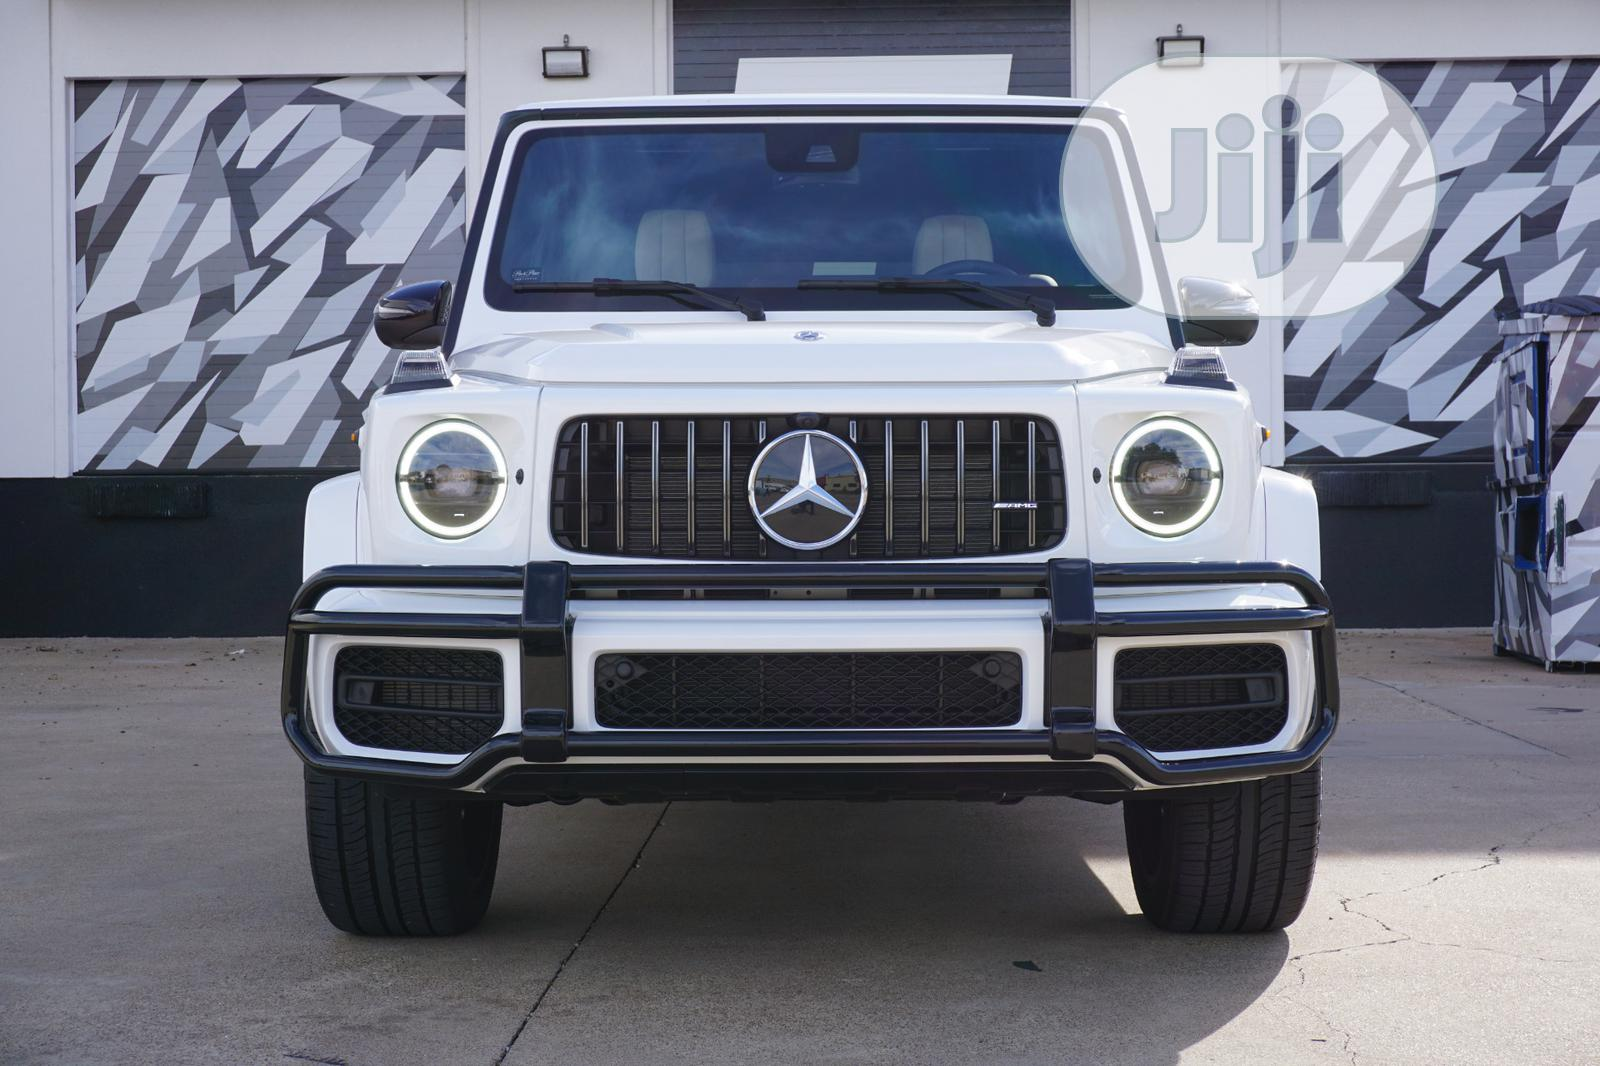 Archive New Mercedes Benz G Class 2020 Base G 550 Awd White In Lekki Cars Ib Topnotch Enterprise Jiji Ng